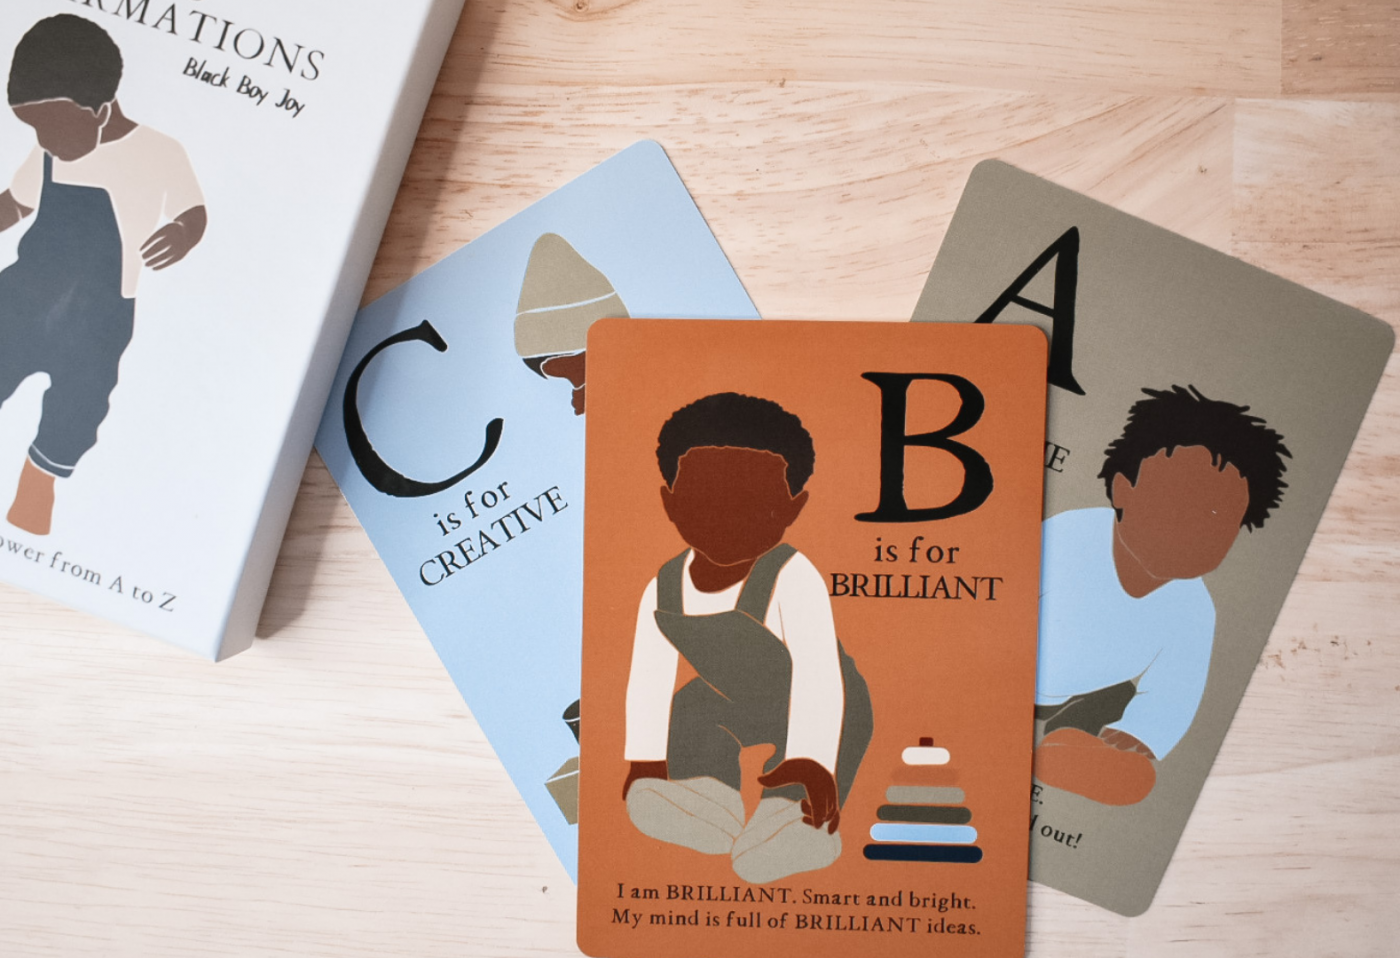 image of ABC Affirmation flash cards with Black boy illustrations